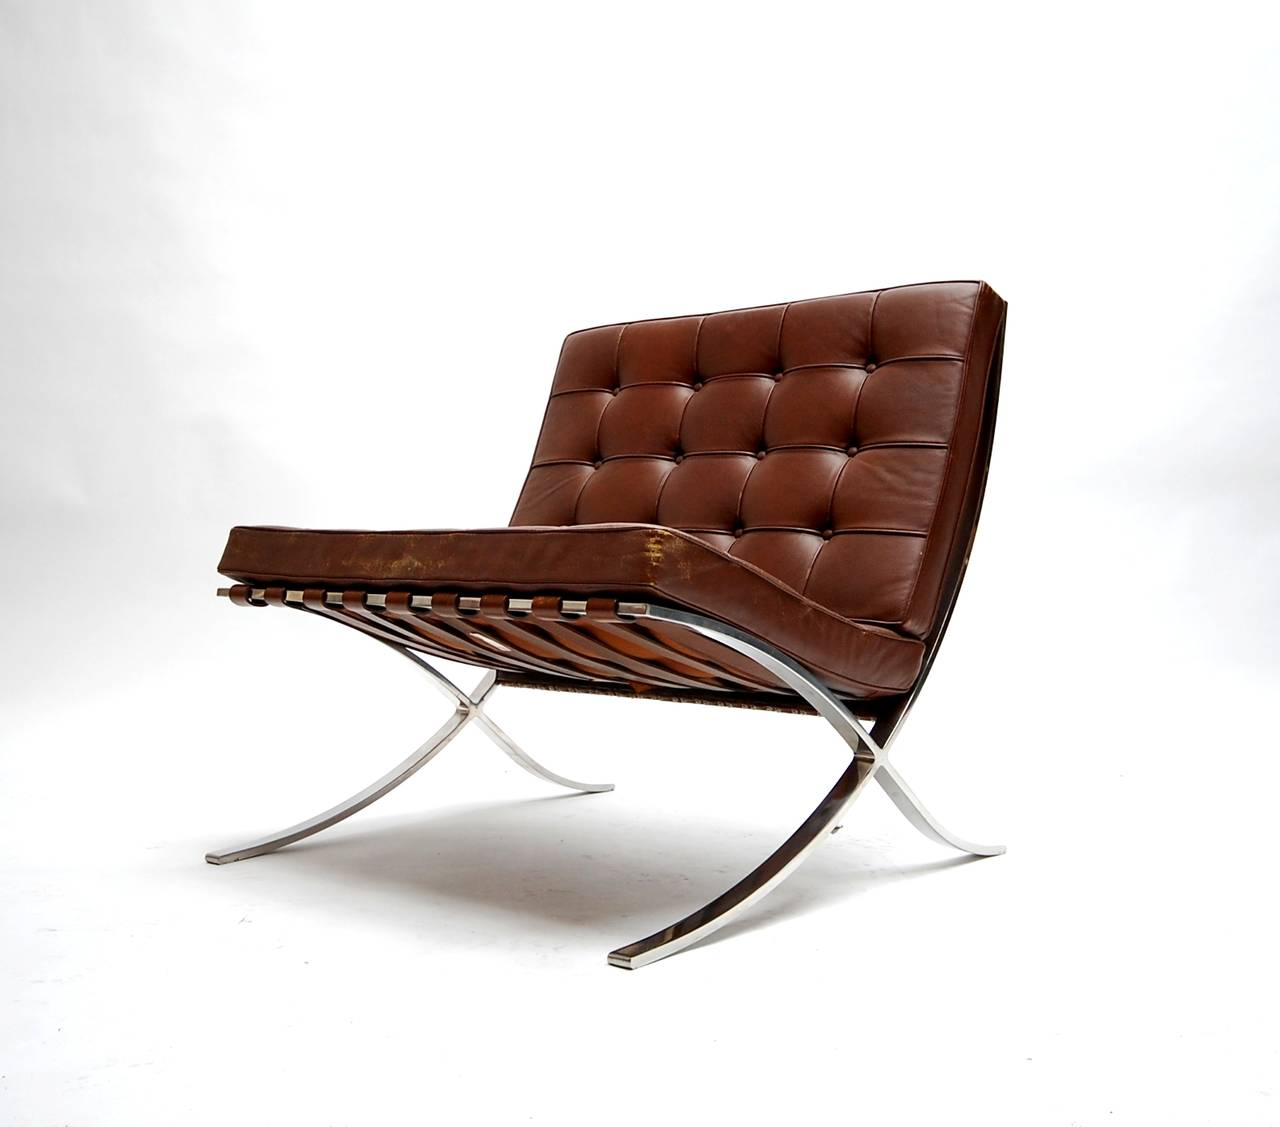 Exceptional Pair of 1960s Barcelona Lounge Chairs by Knoll at 1stdibs